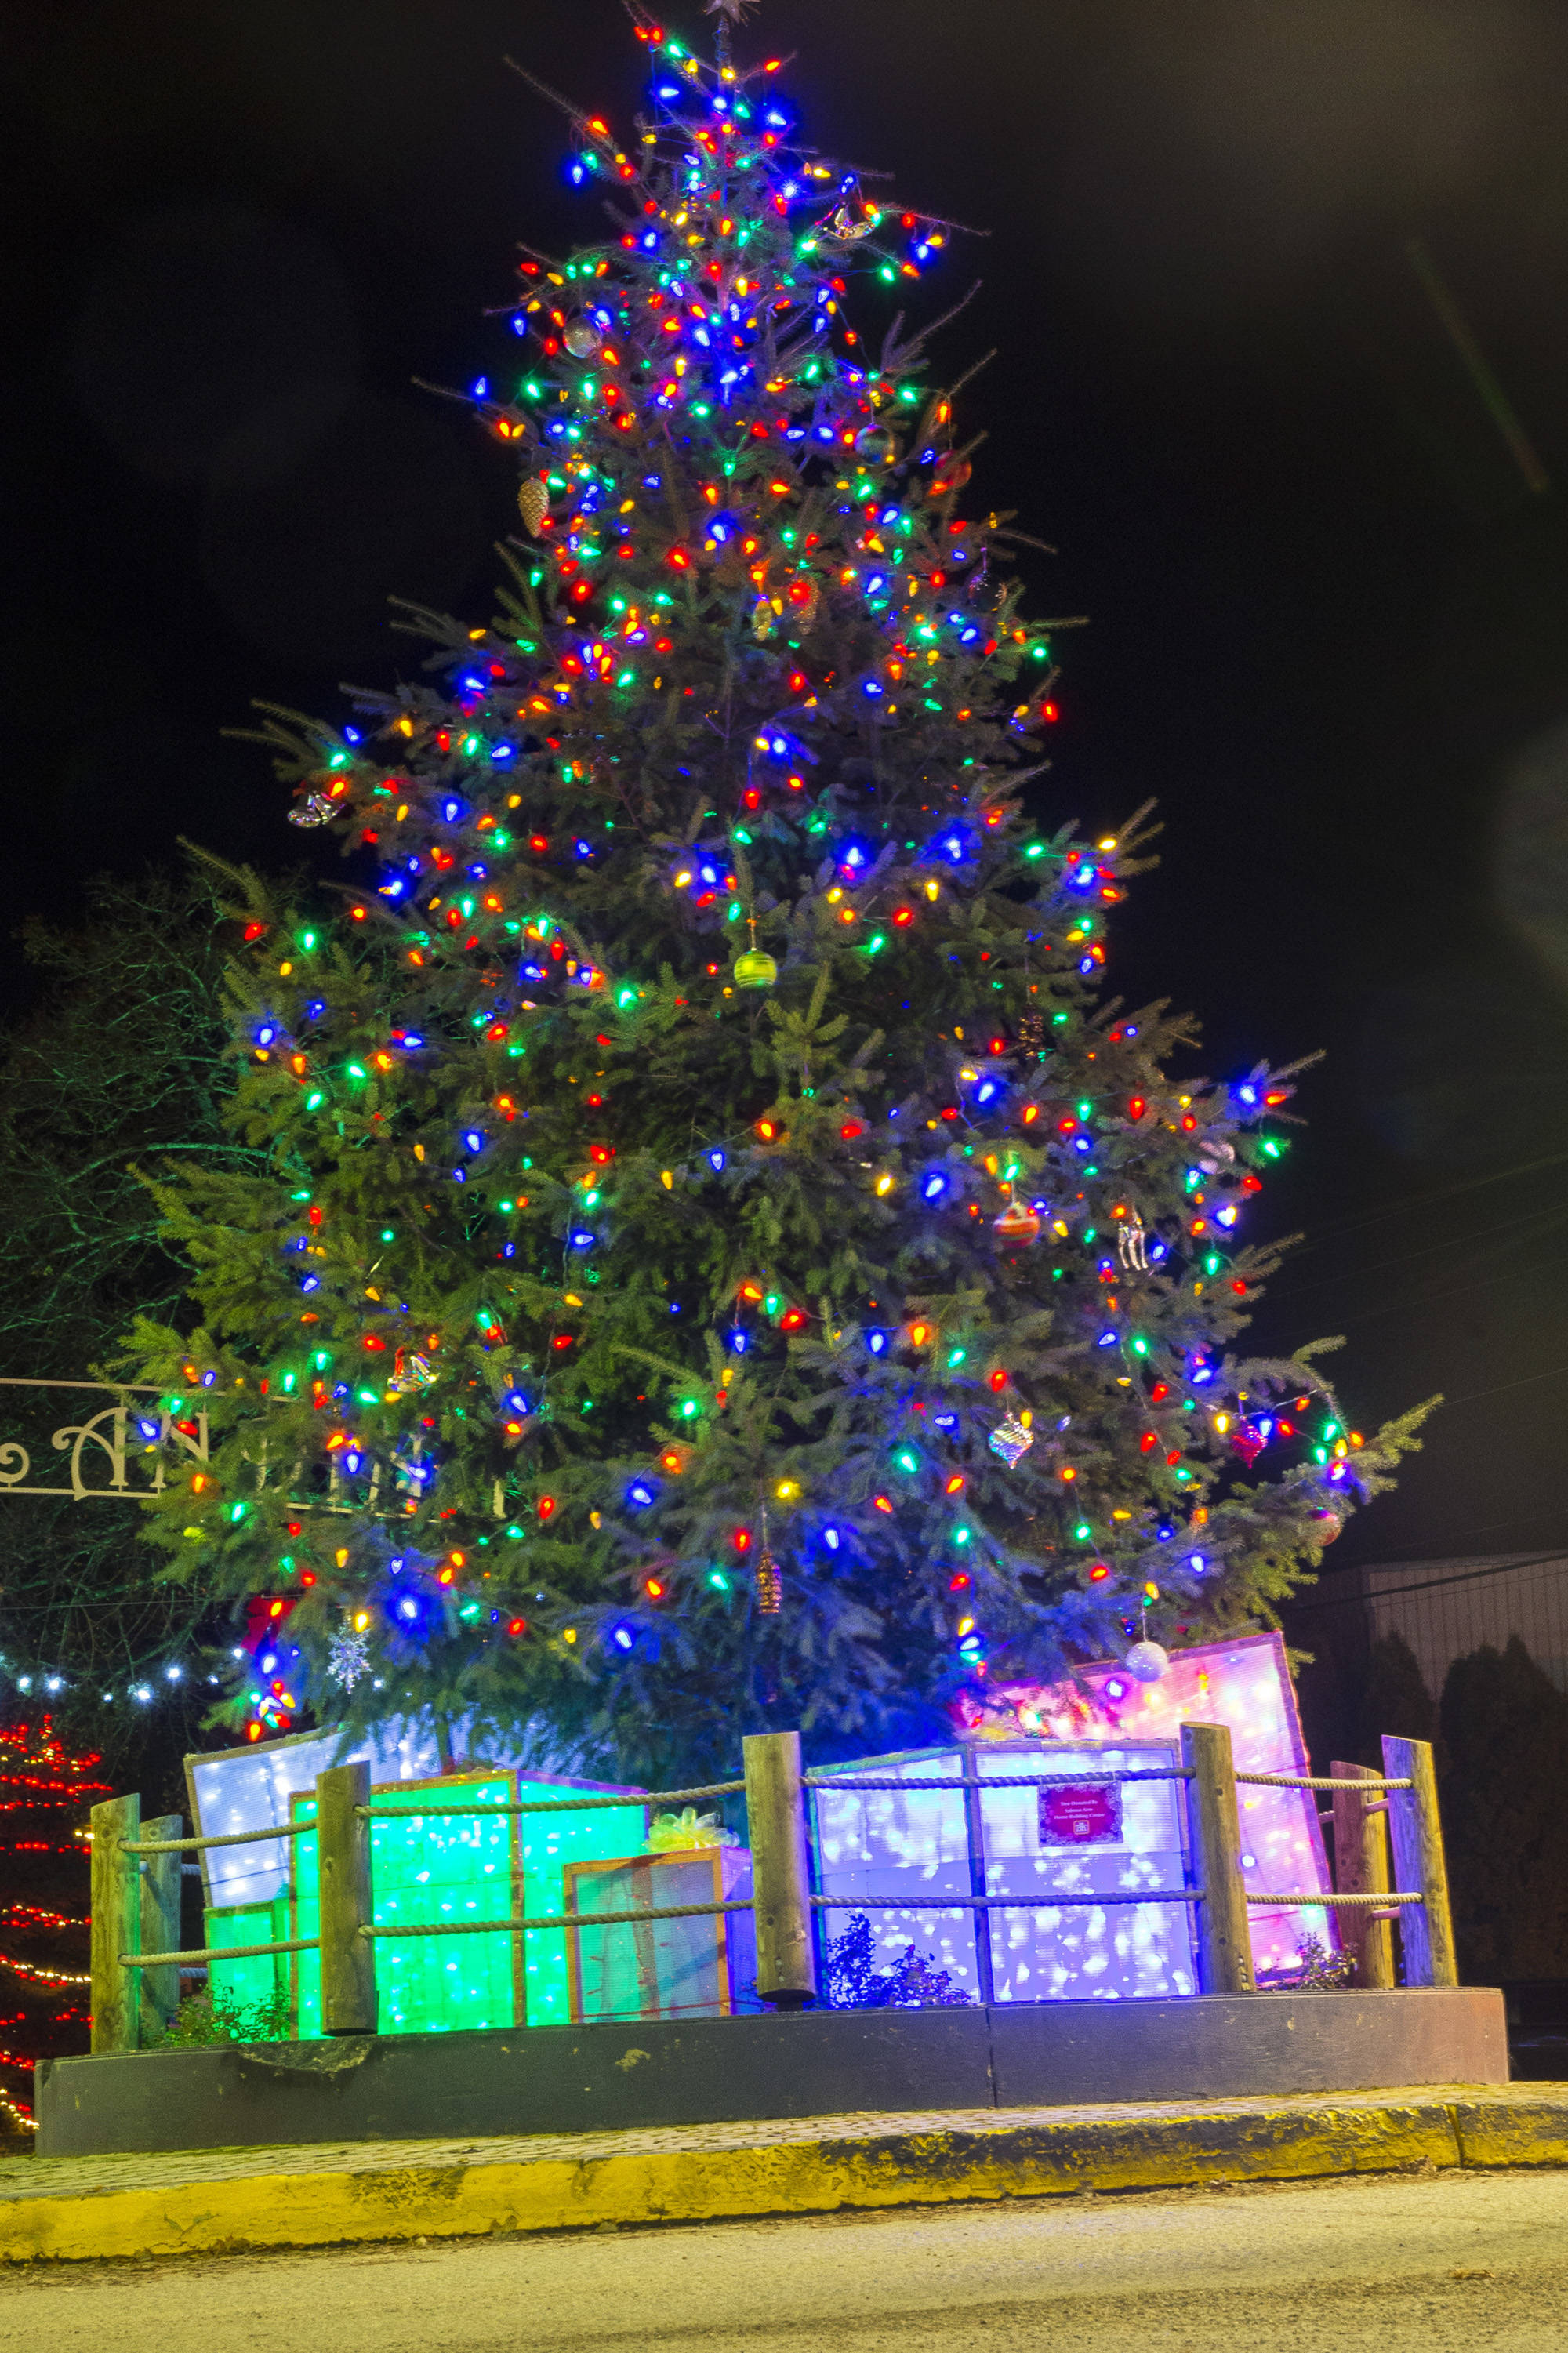 Sicamous pulled out all the stops for the decoration on and around the Christmas tree at the roundabout at the west end of Main Street. How well do you know Christmas traditions? (Jim Elliot/Eagle Valley News)